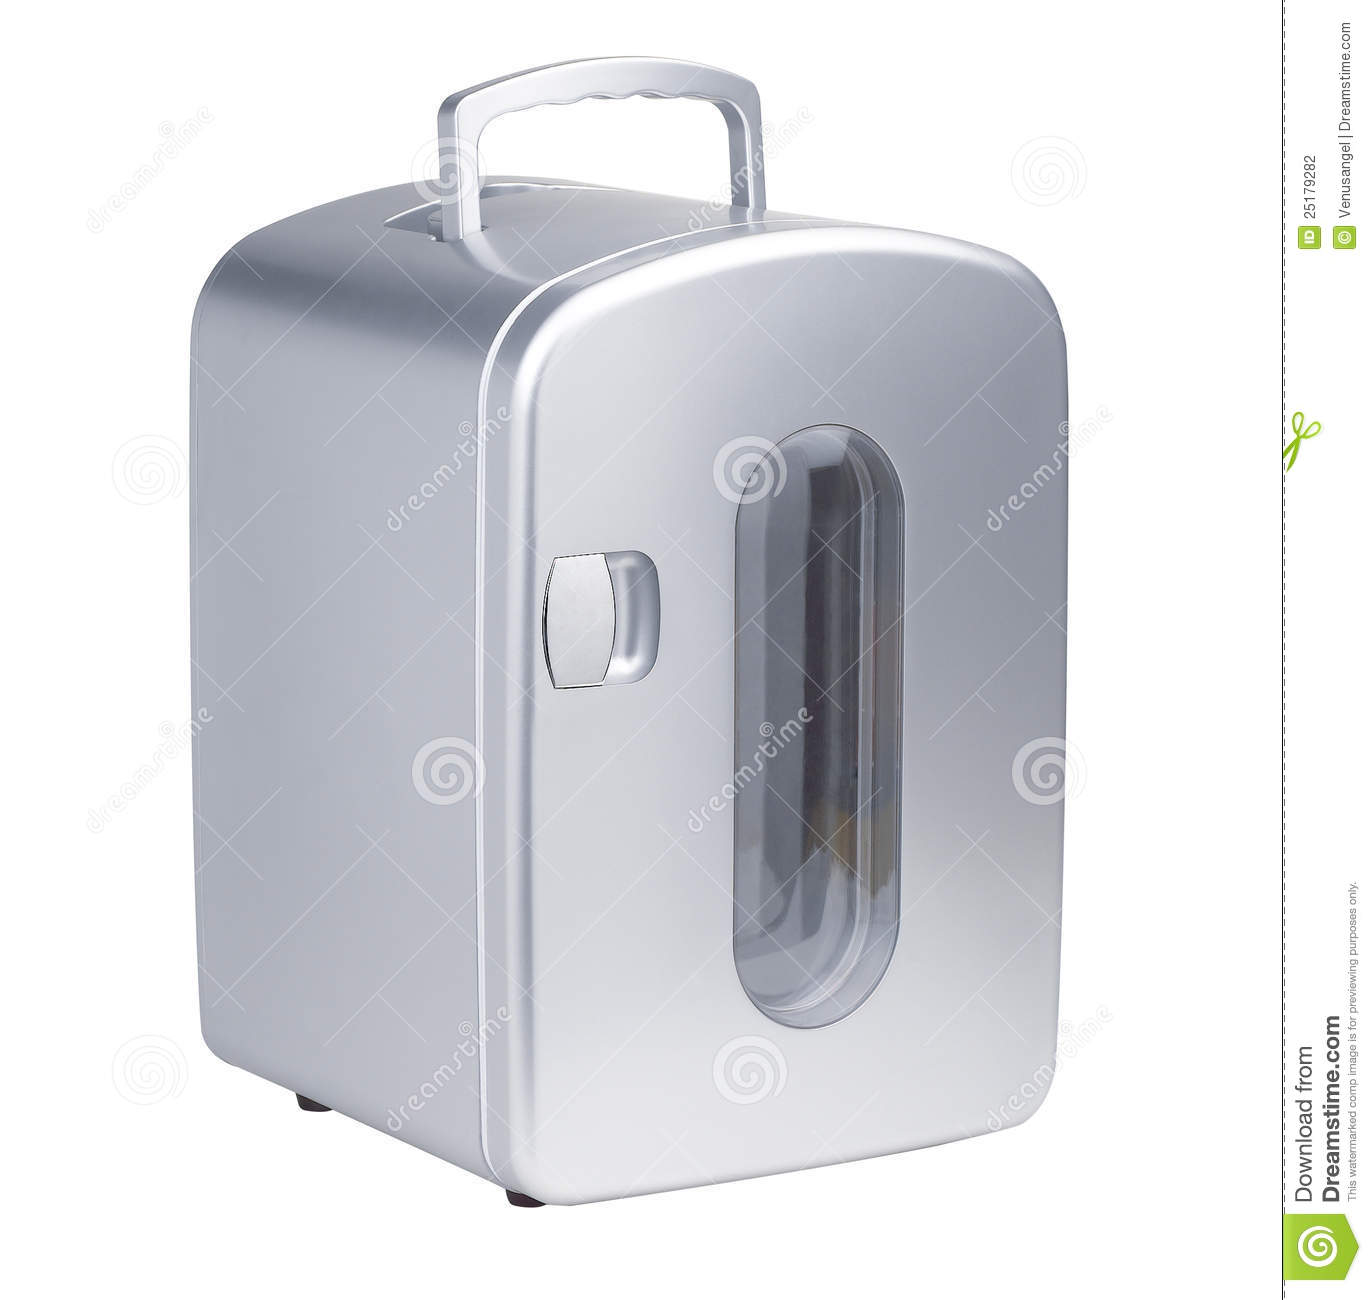 A Small Portable Refrigerator Stock Photography - Image